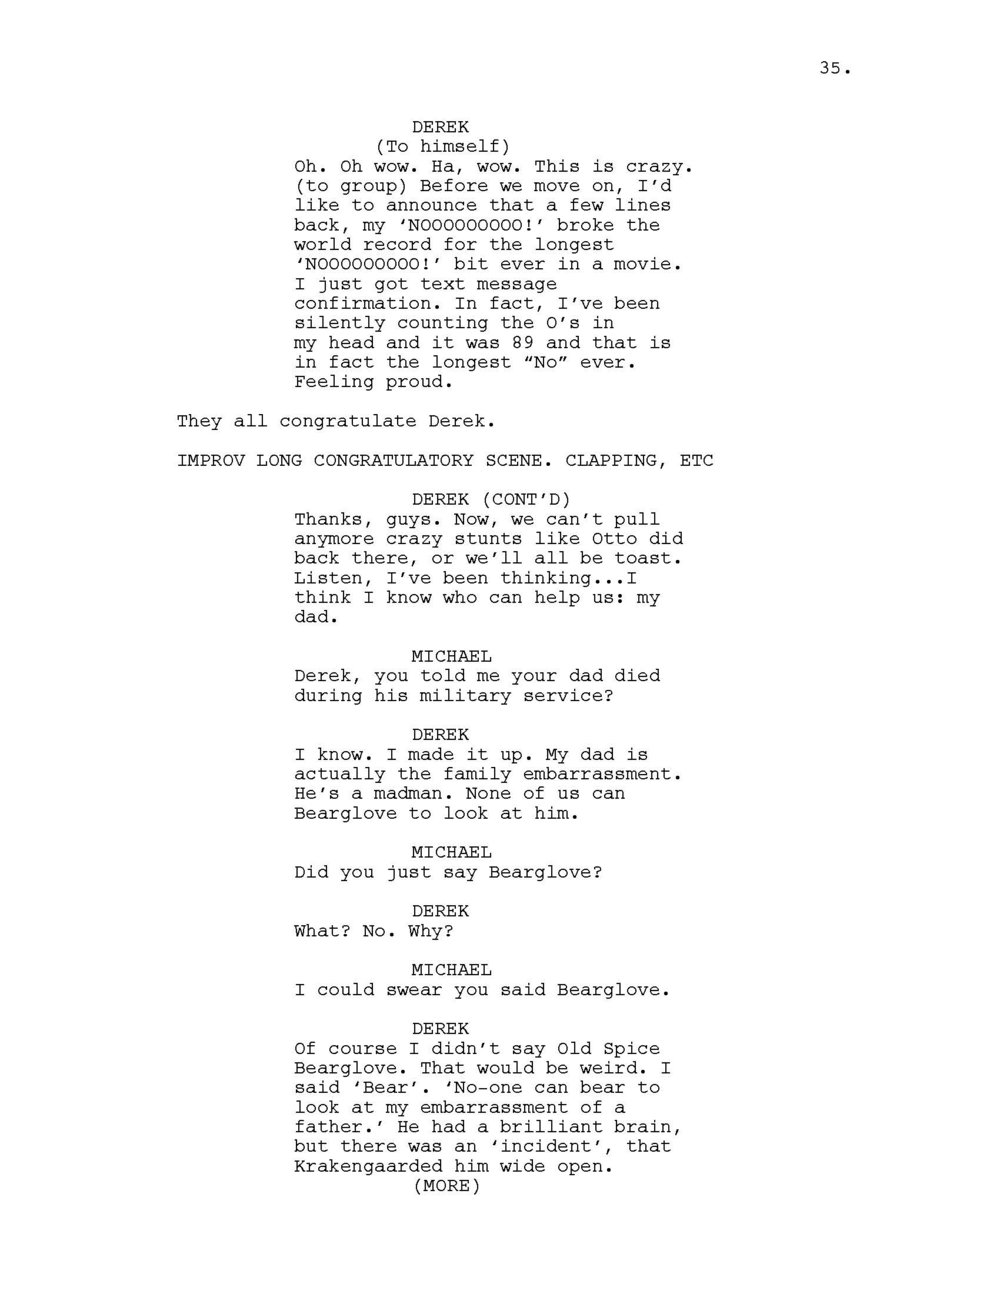 INVISIBLE WORLD SCRIPT_Page_036.jpg